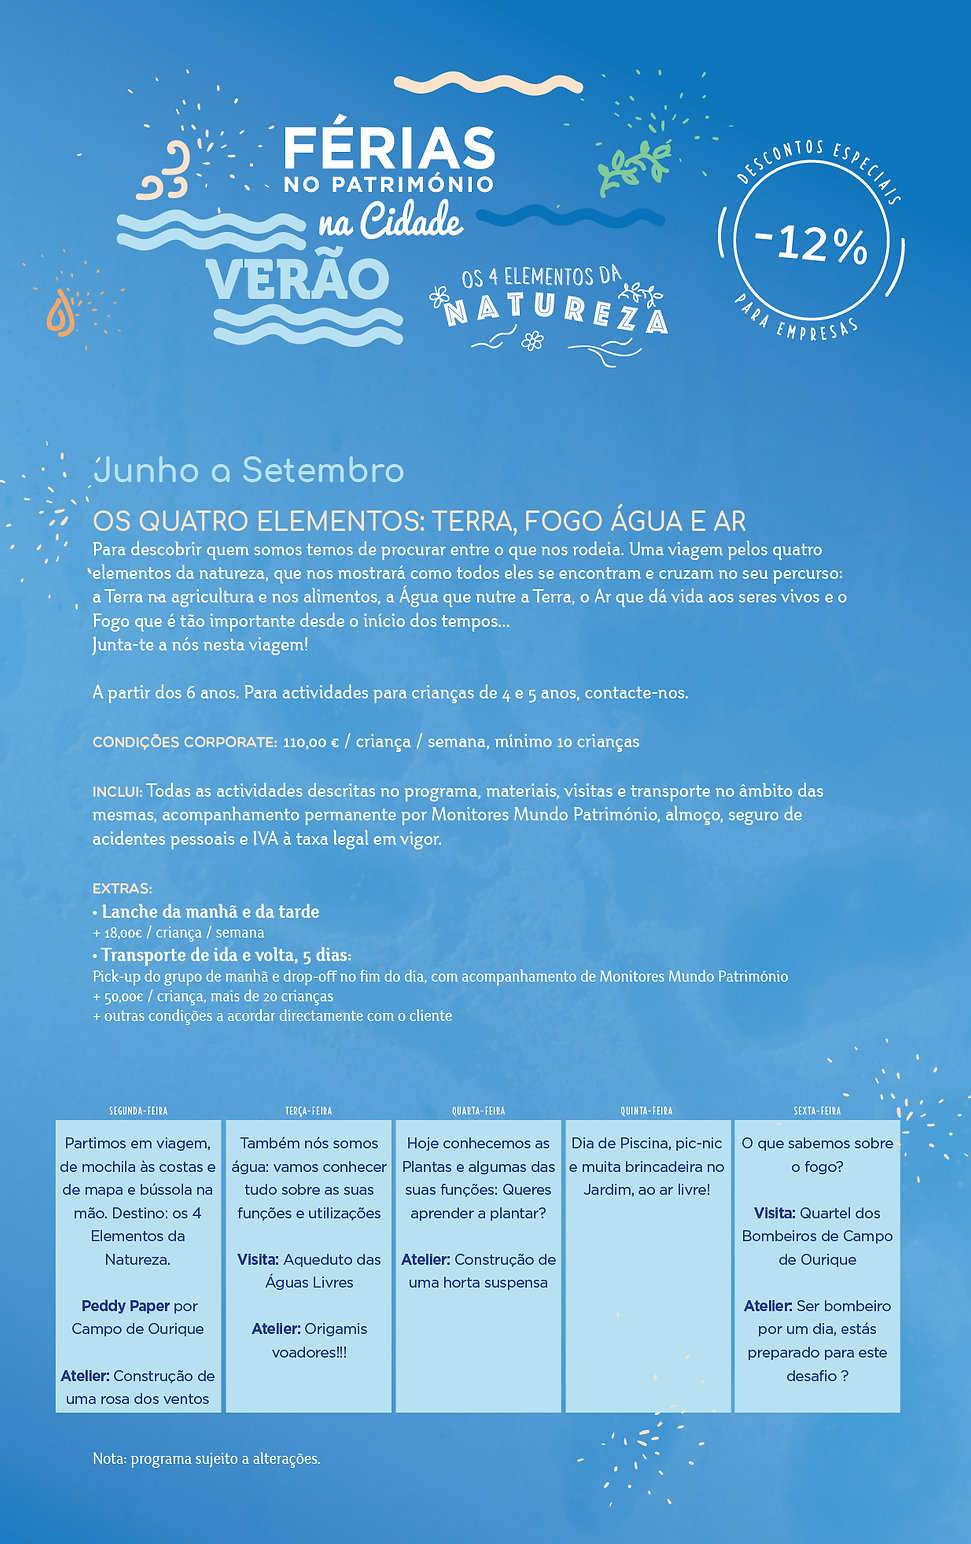 Ferias-verao-corporate-site-02.png